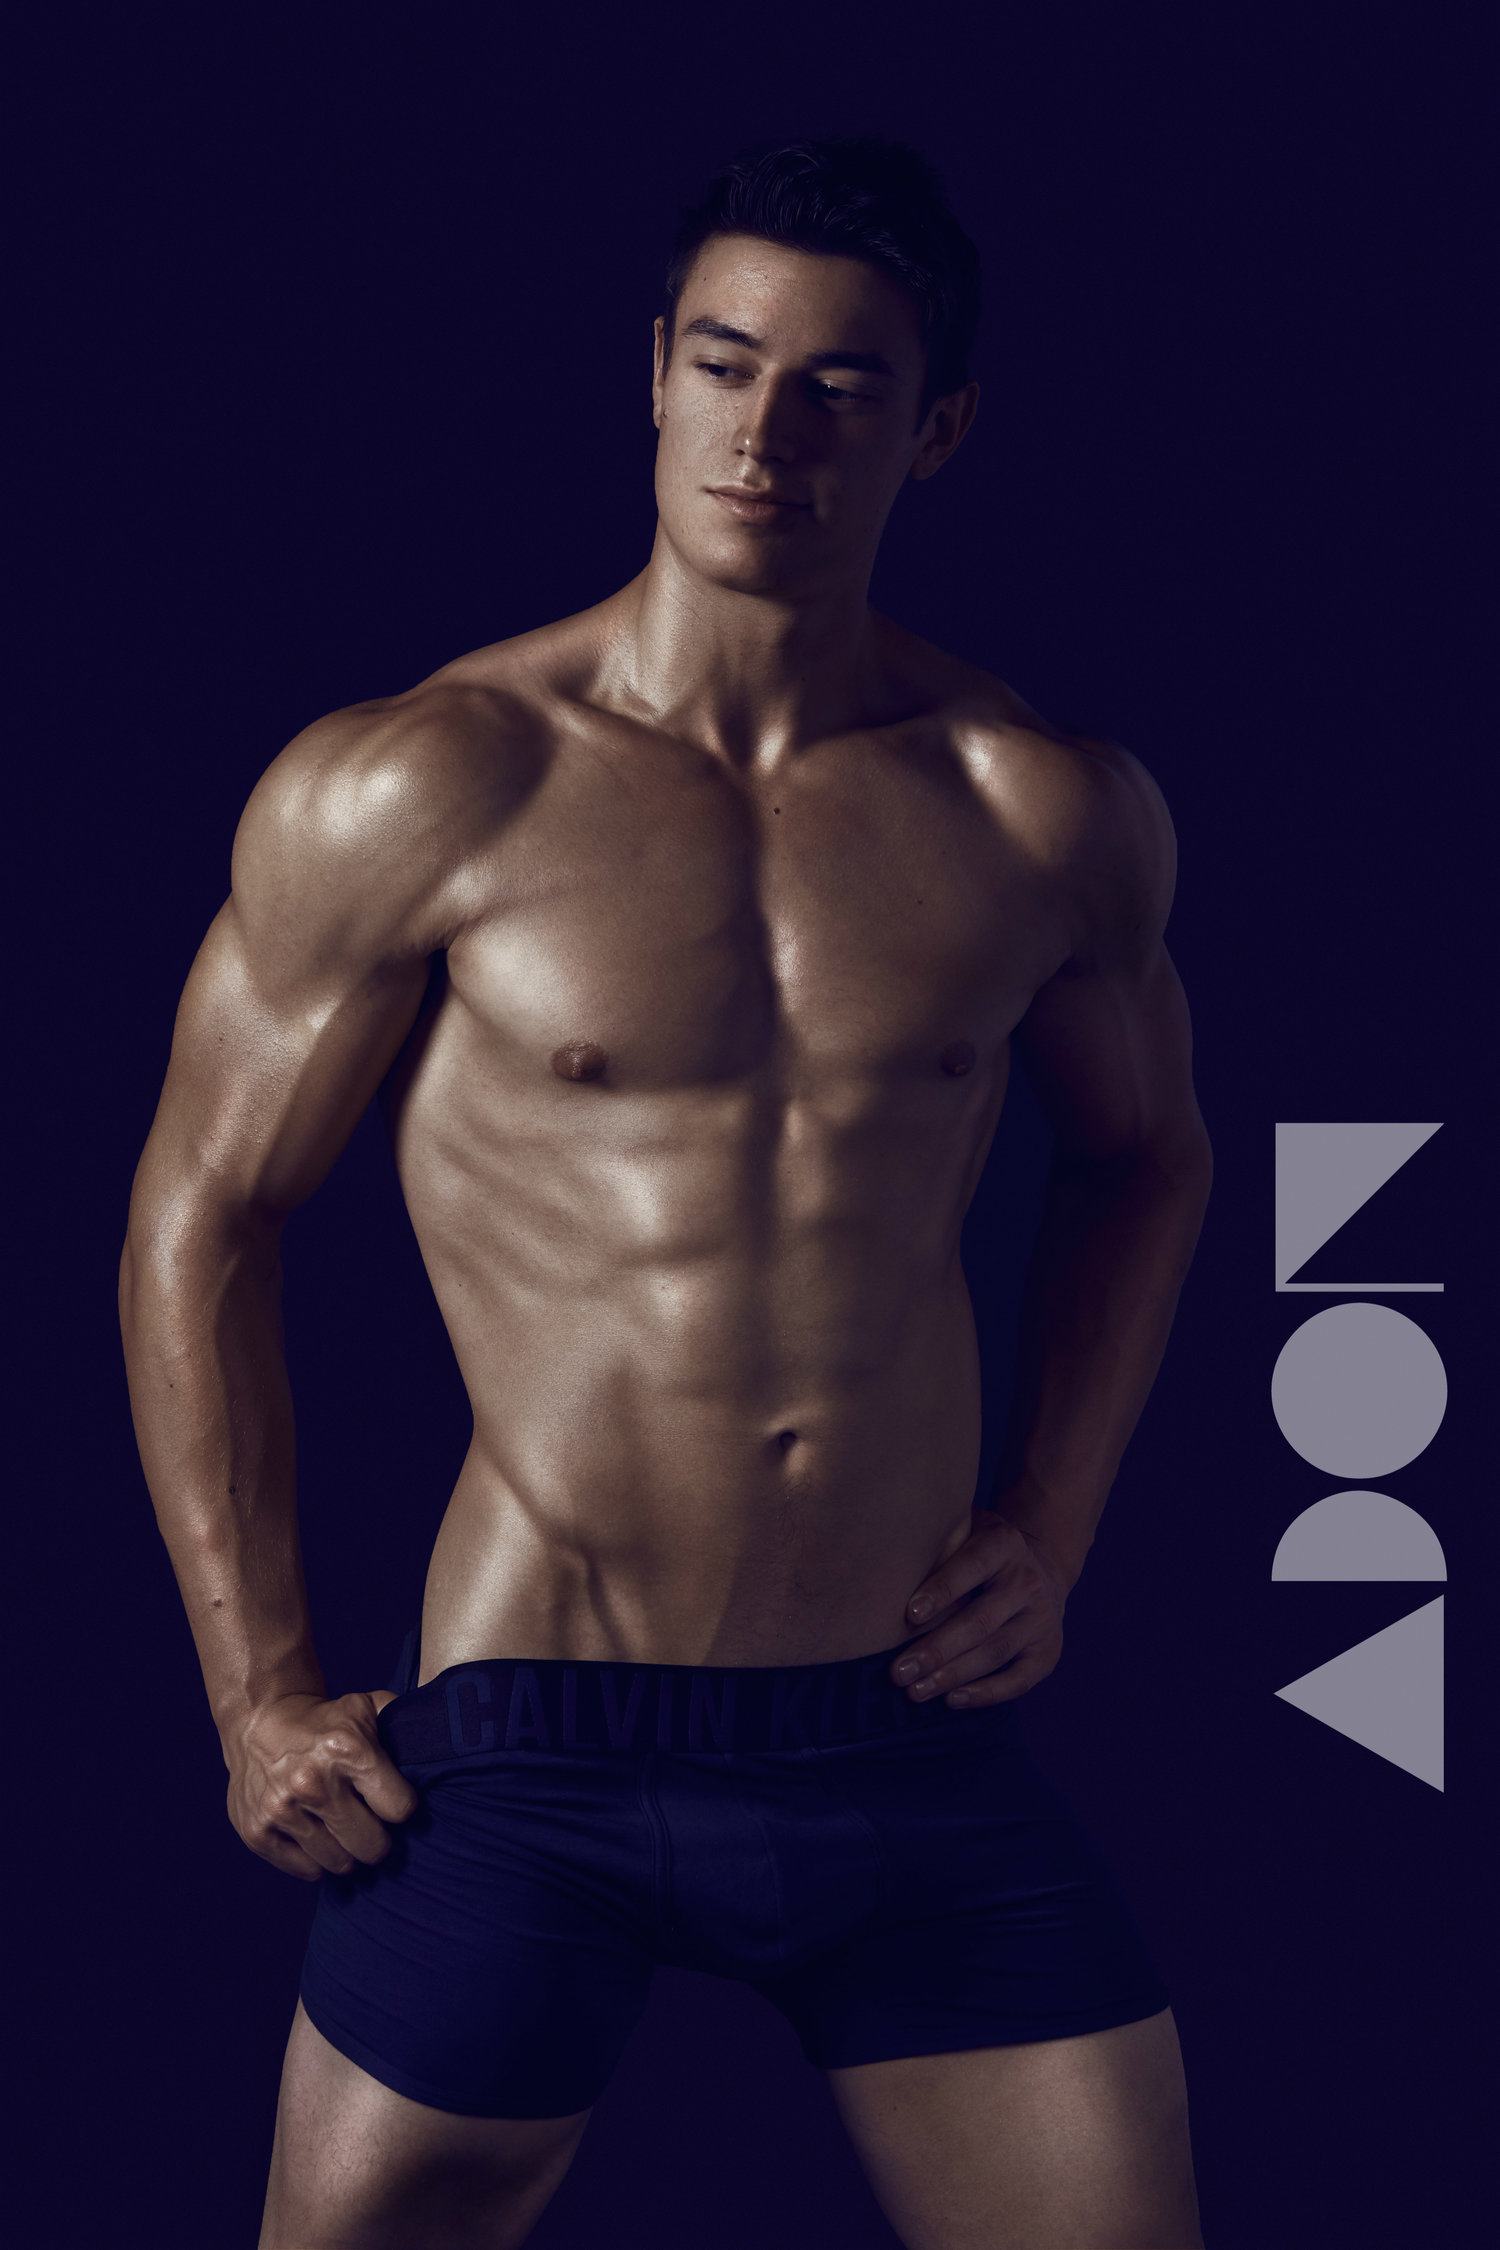 Adon Exclusive: Model Geoff Tabor  By Irving Scott Lopez